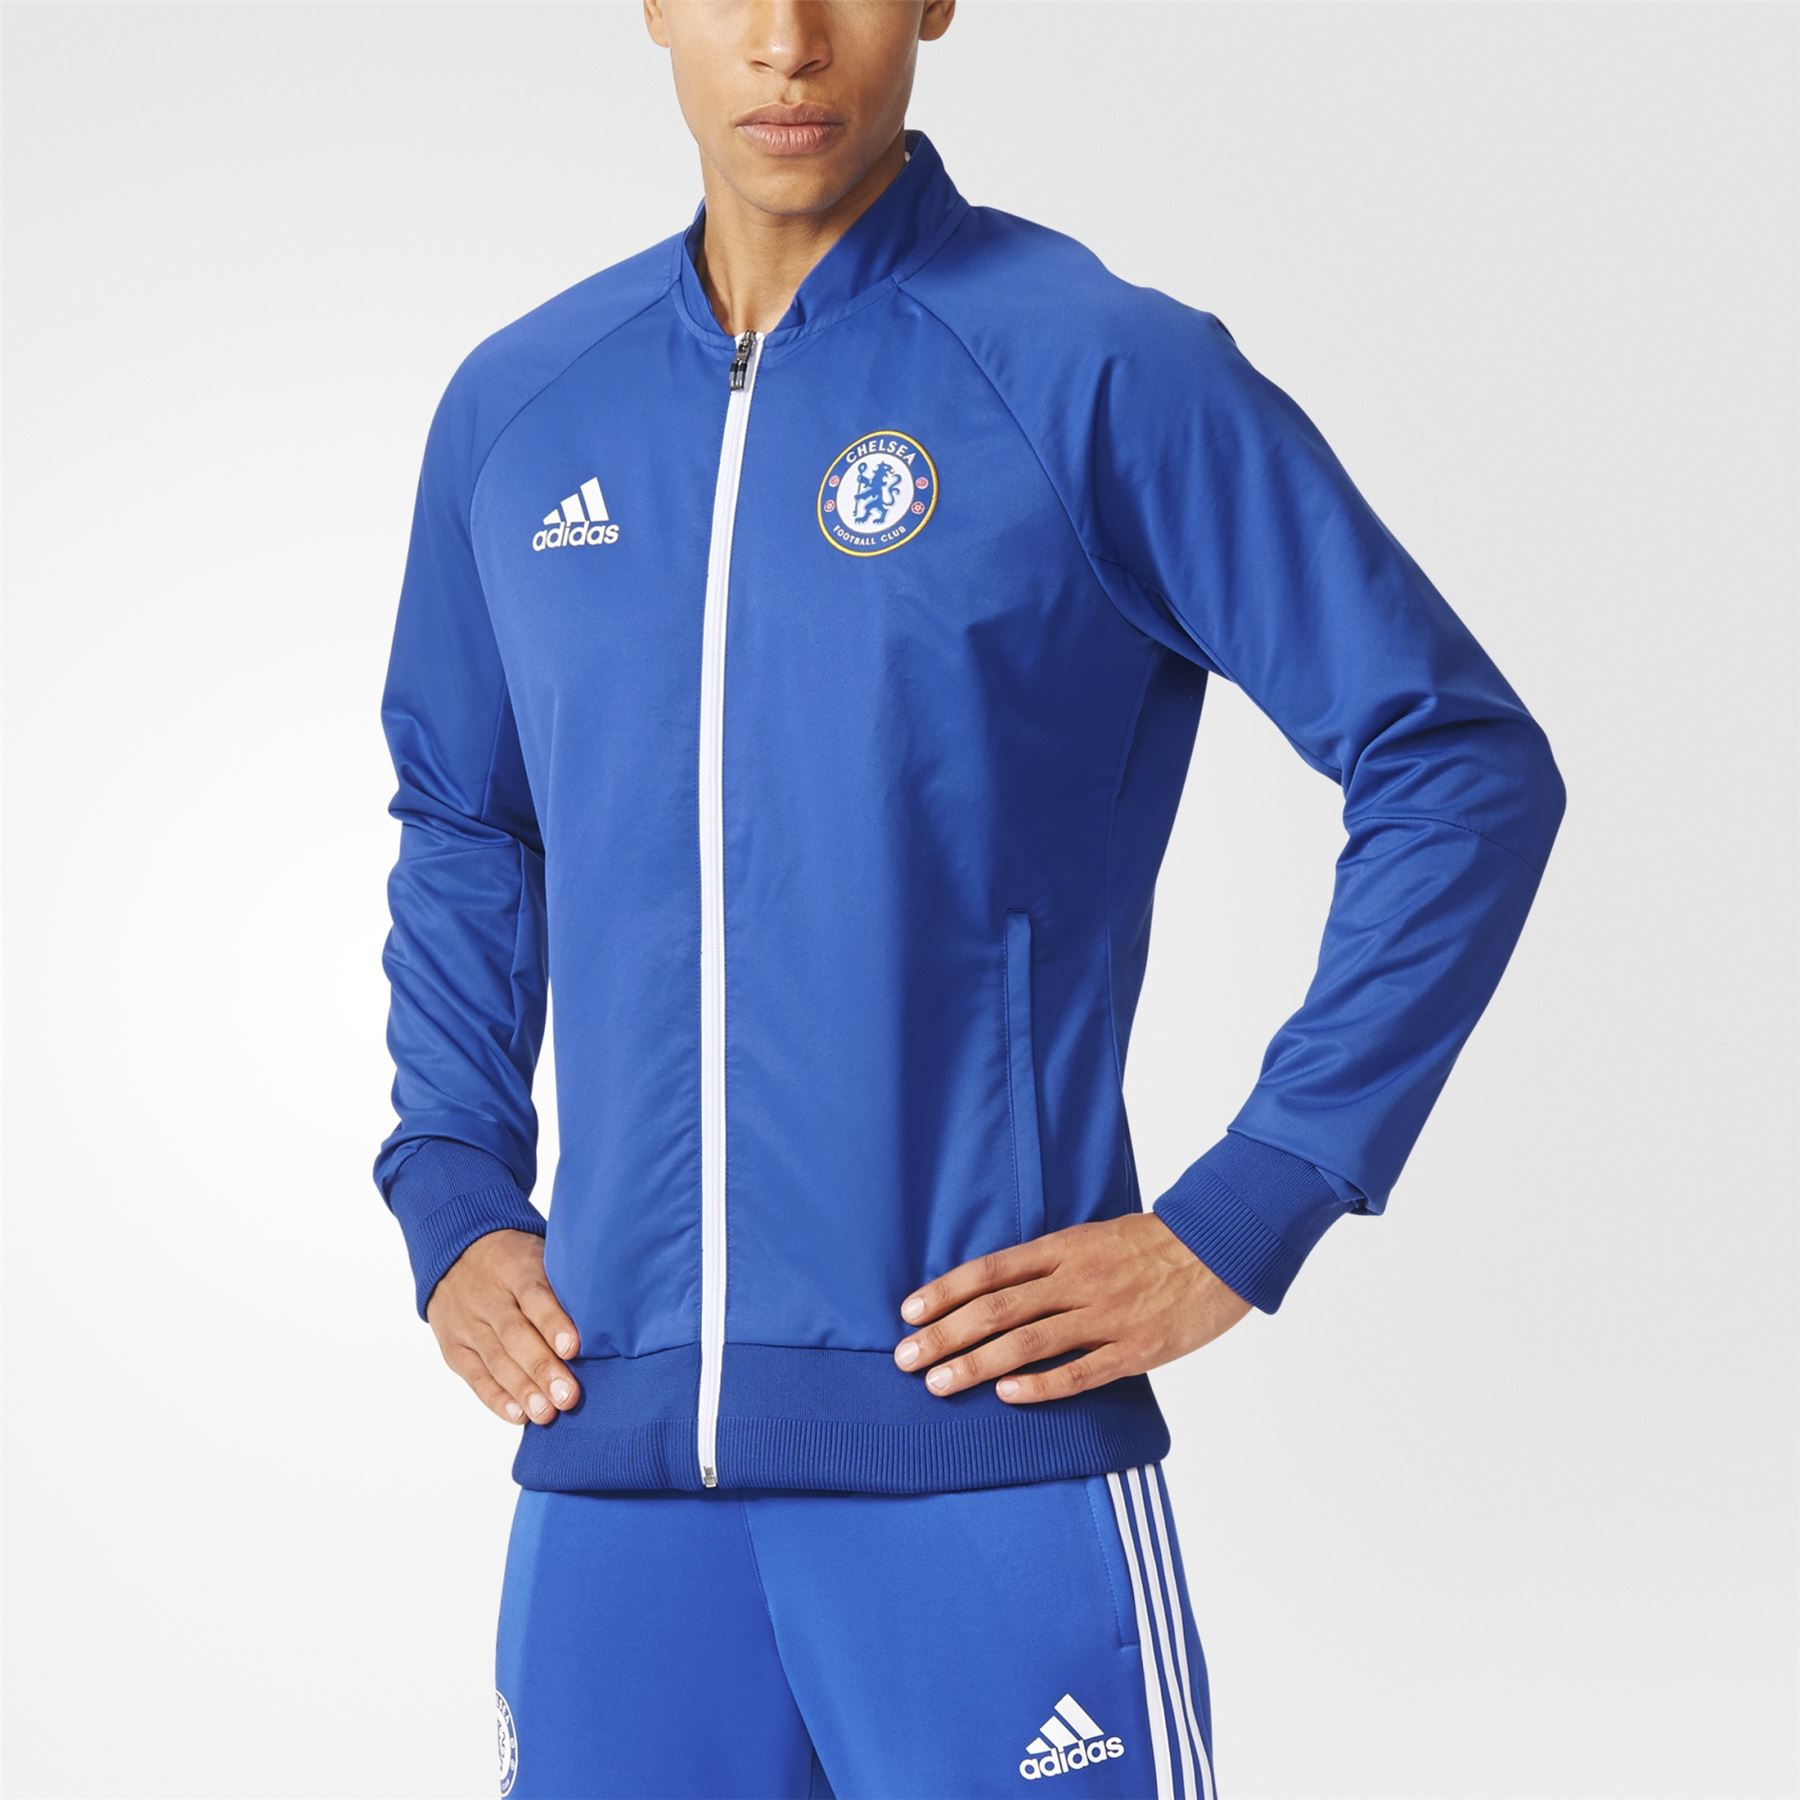 0aed94c1f Details about adidas CHELSEA FC ANTHEM JACKET BLUE MEN S FOOTBALL  PREMIERSHIP CHAMPIONS NEW